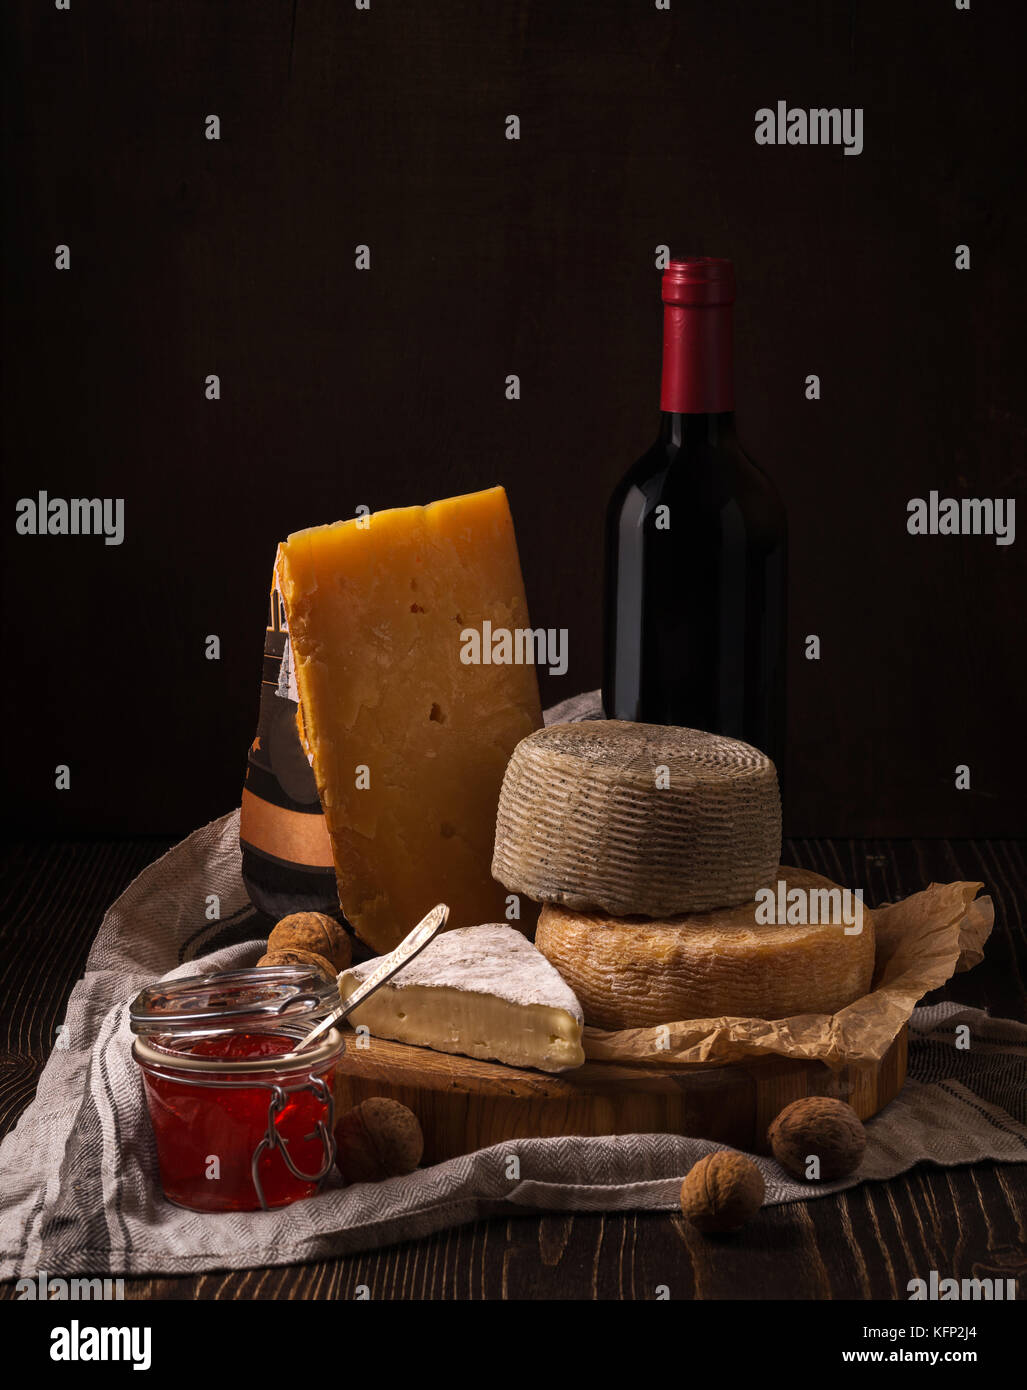 Cheese, jam and wine on the rough wood - Stock Image